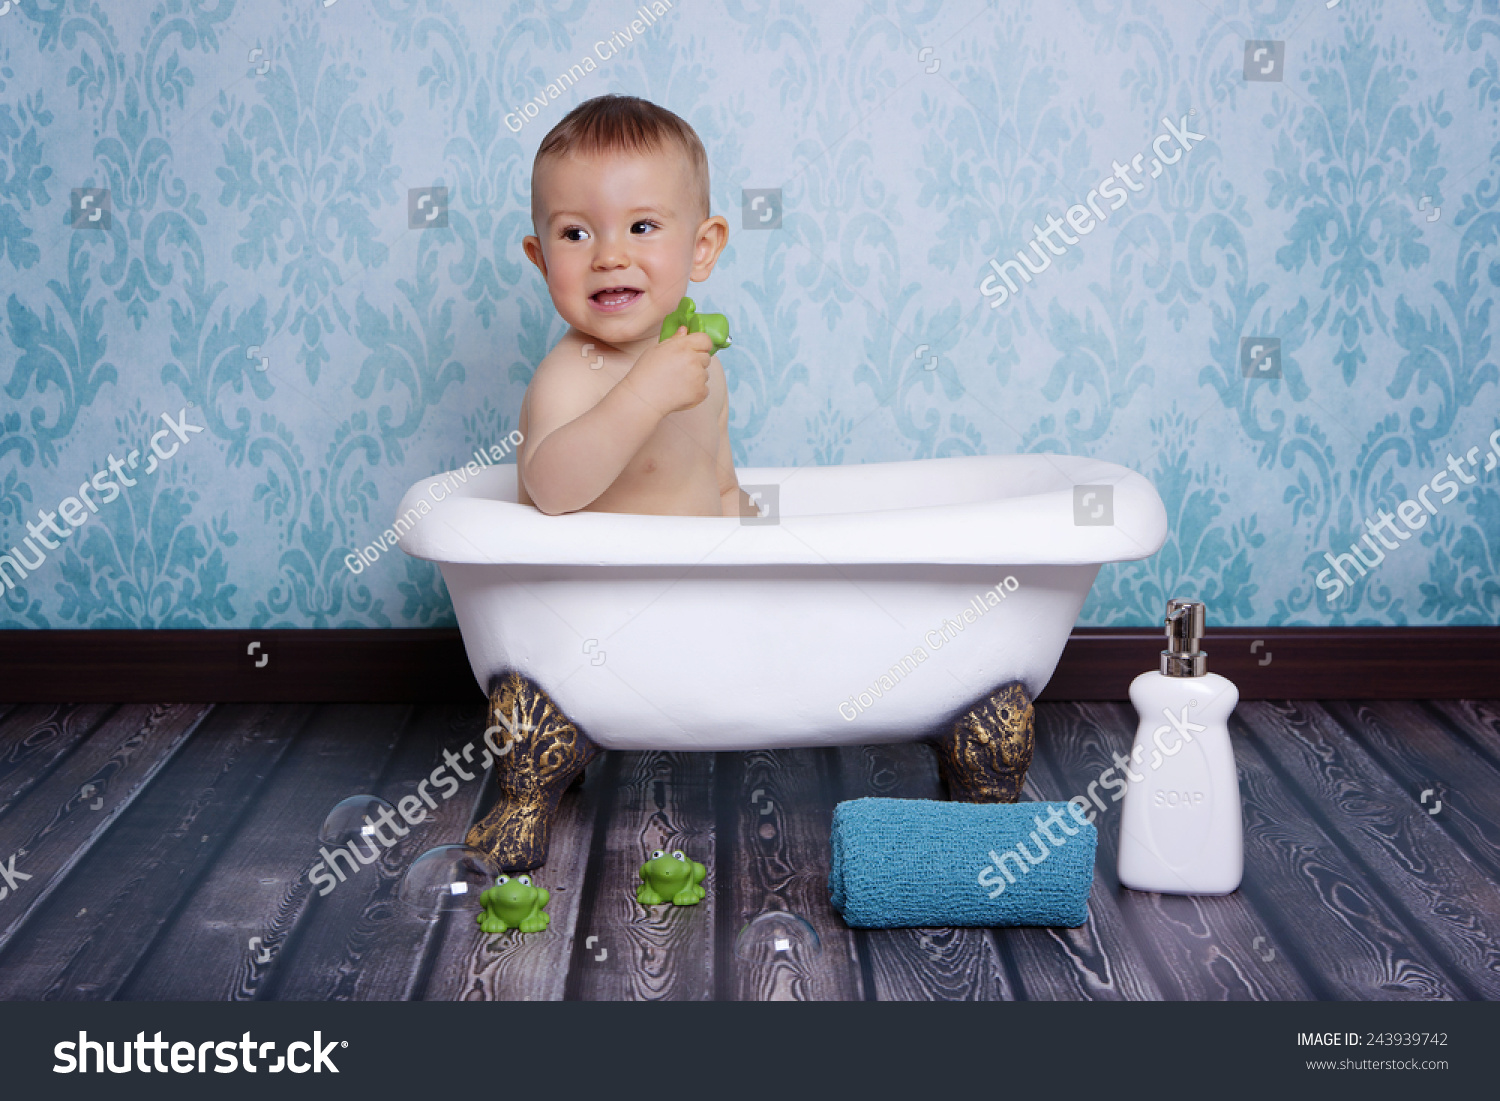 Beautiful Baby Boy Bath Tub Frog Stock Photo (Safe to Use) 243939742 ...